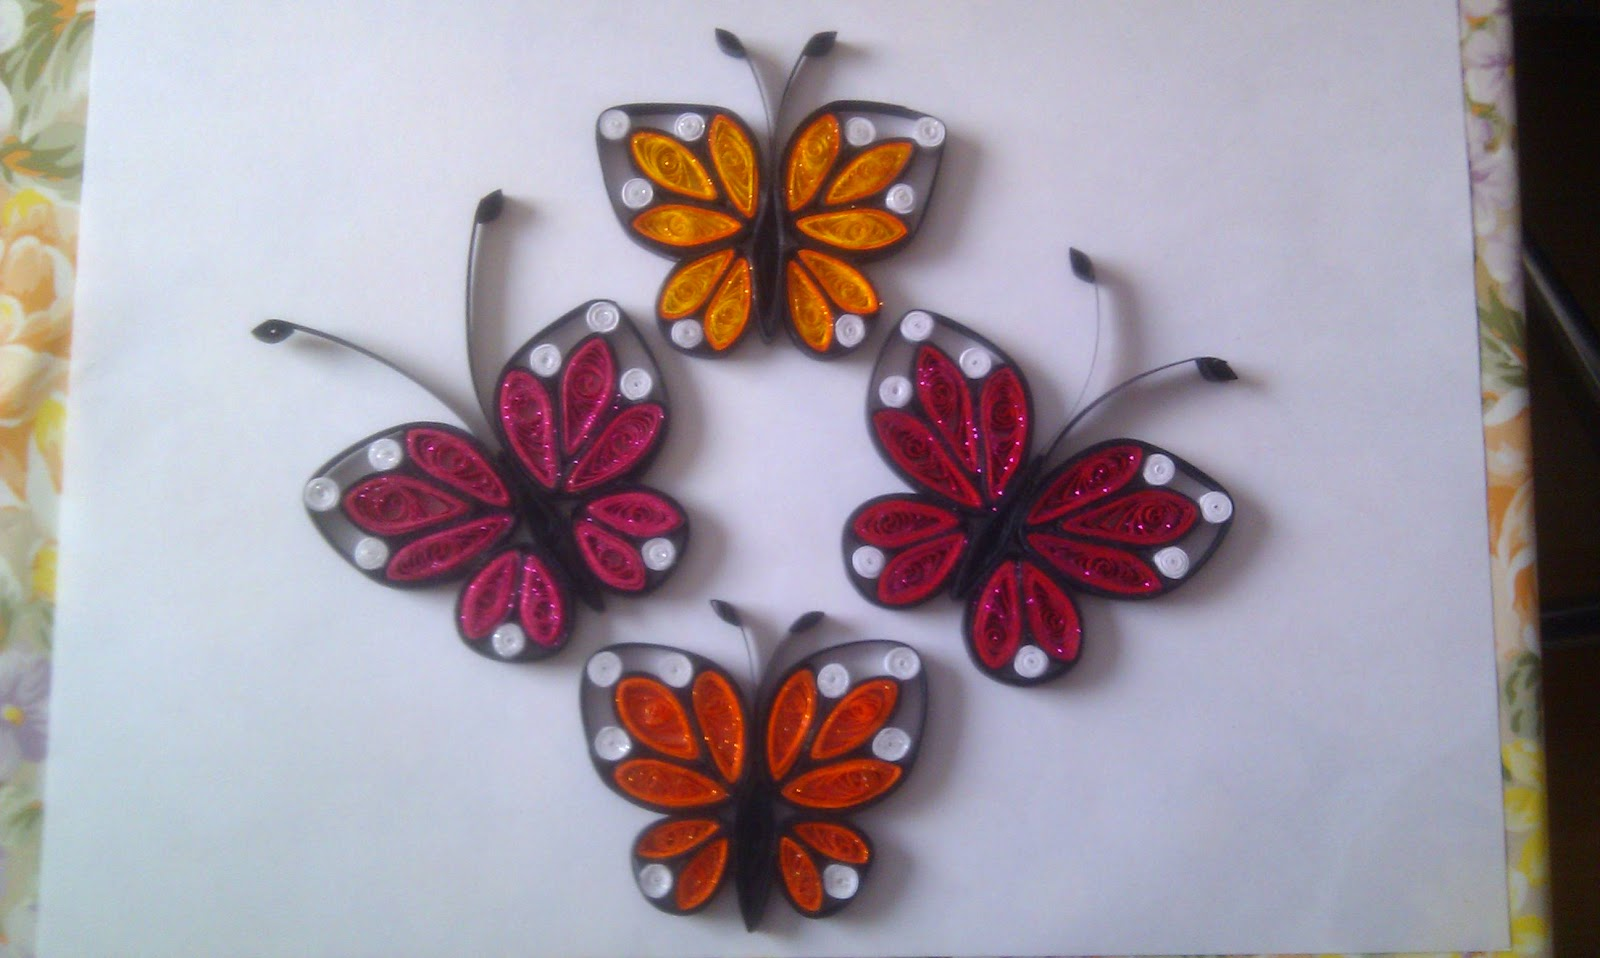 Mititika quilling art quilling fluturi for How to quilling art